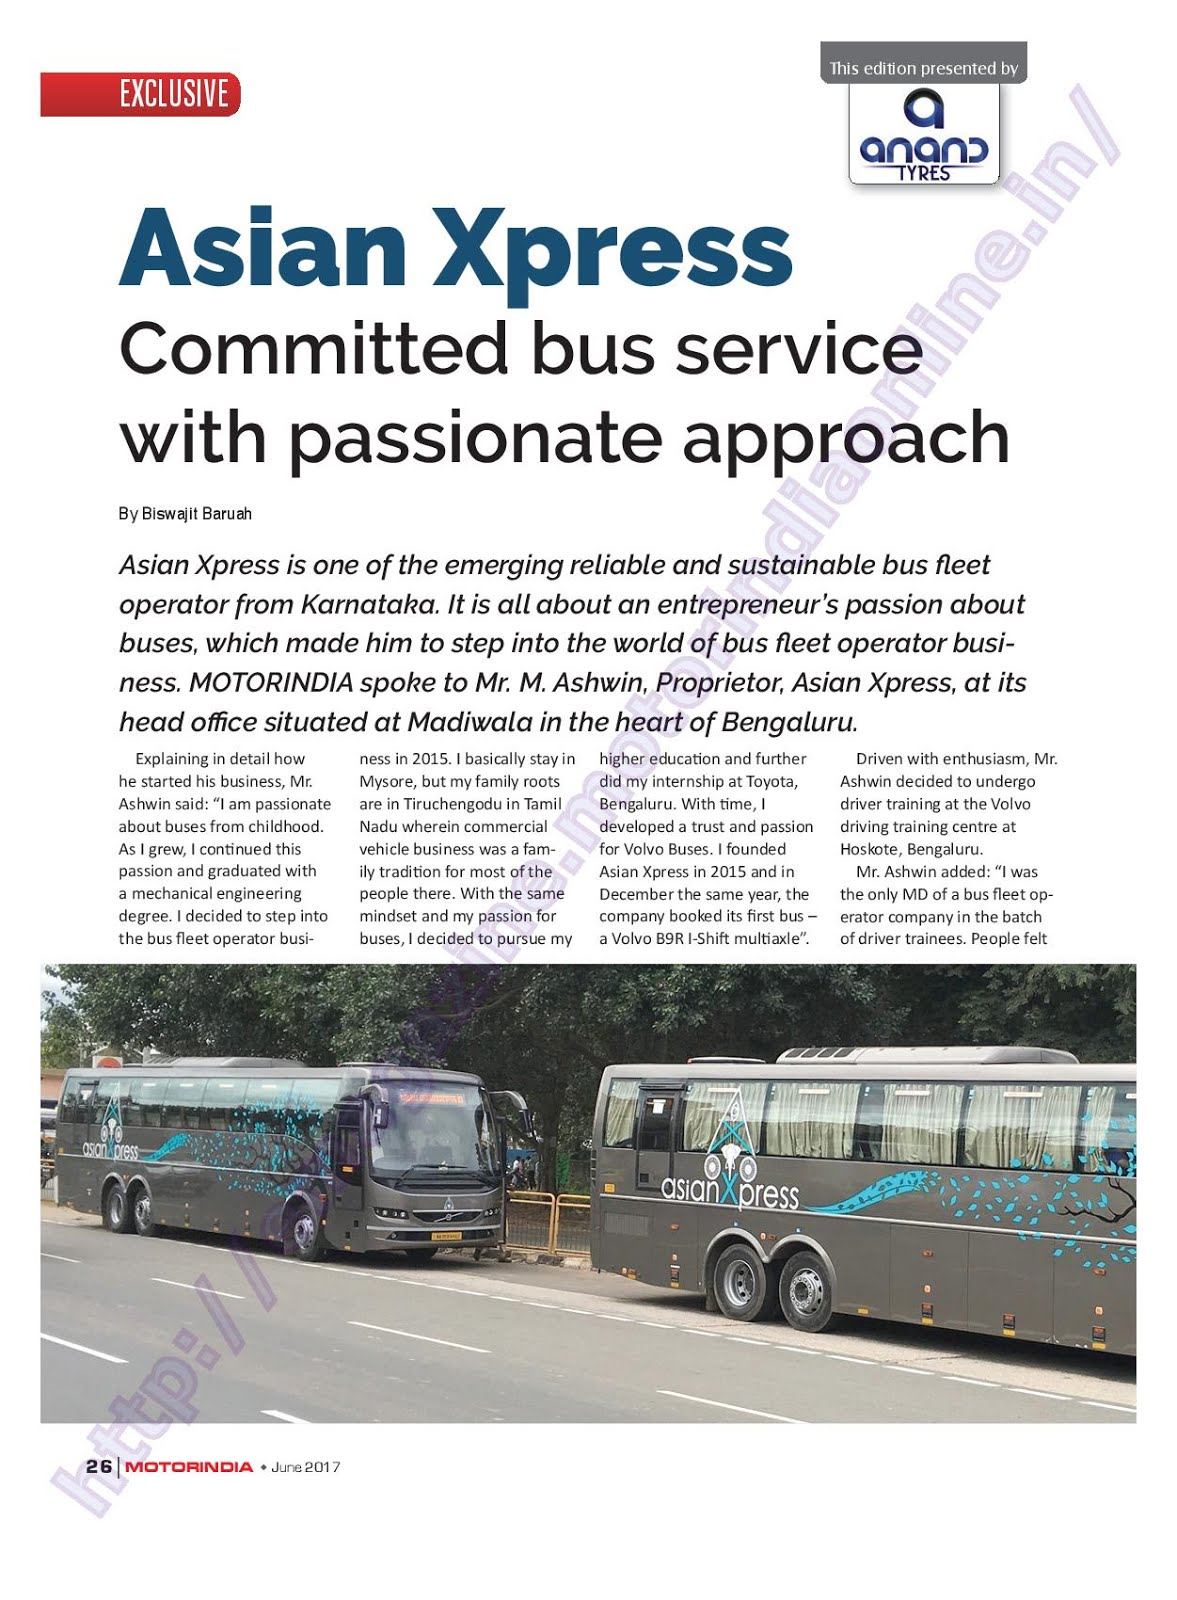 MOTOR INDIA ARTICLE 12 : ASIAN XPRESS